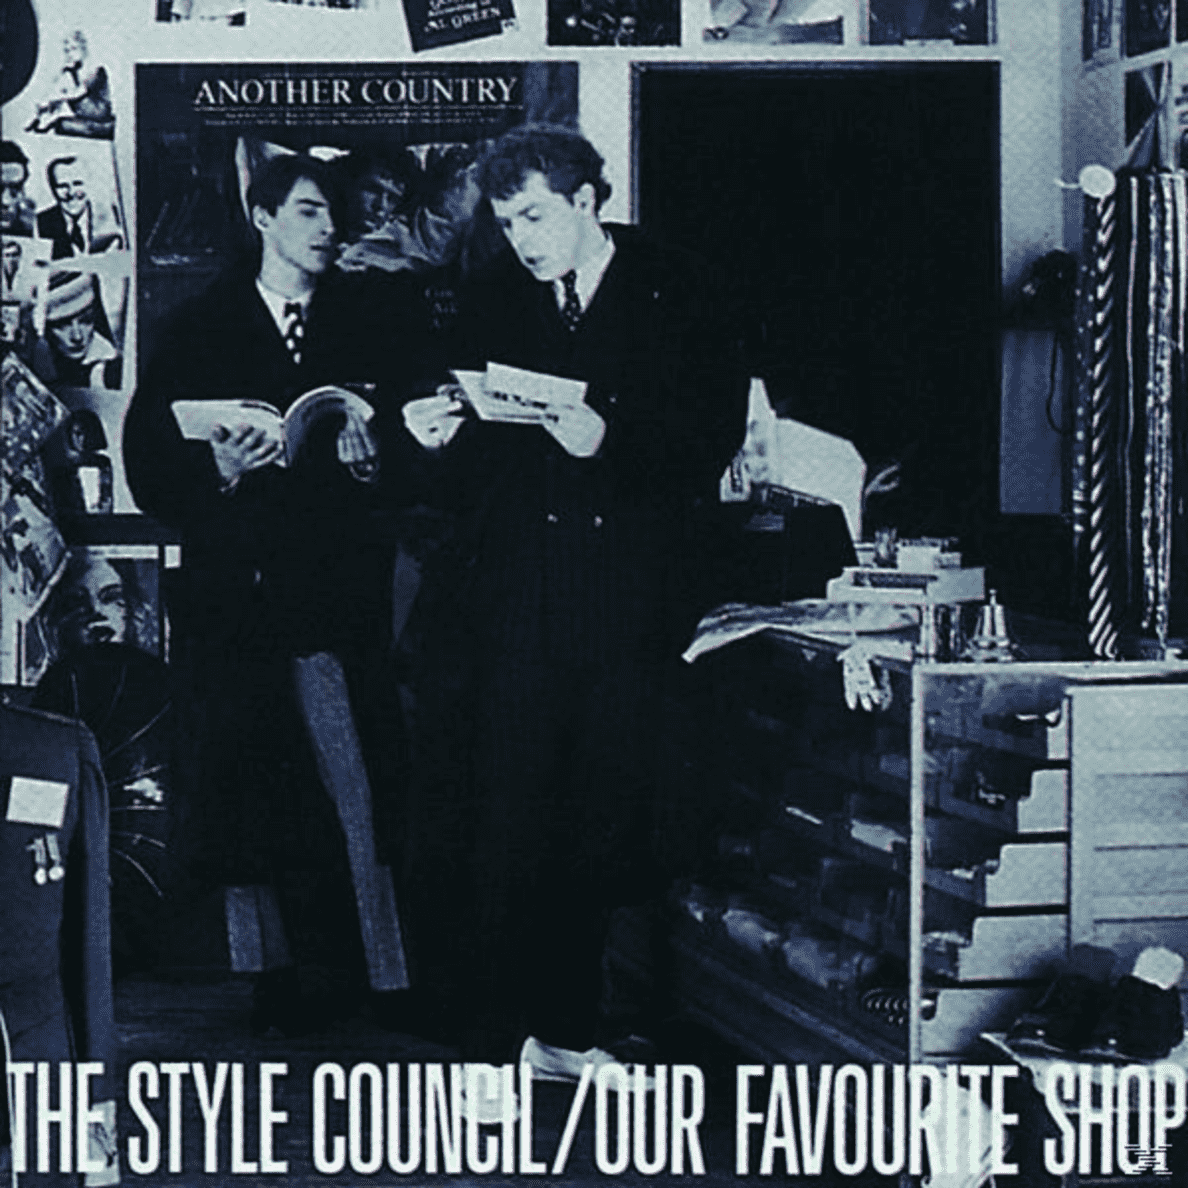 Our Favourite Shop The Style Council auf CD